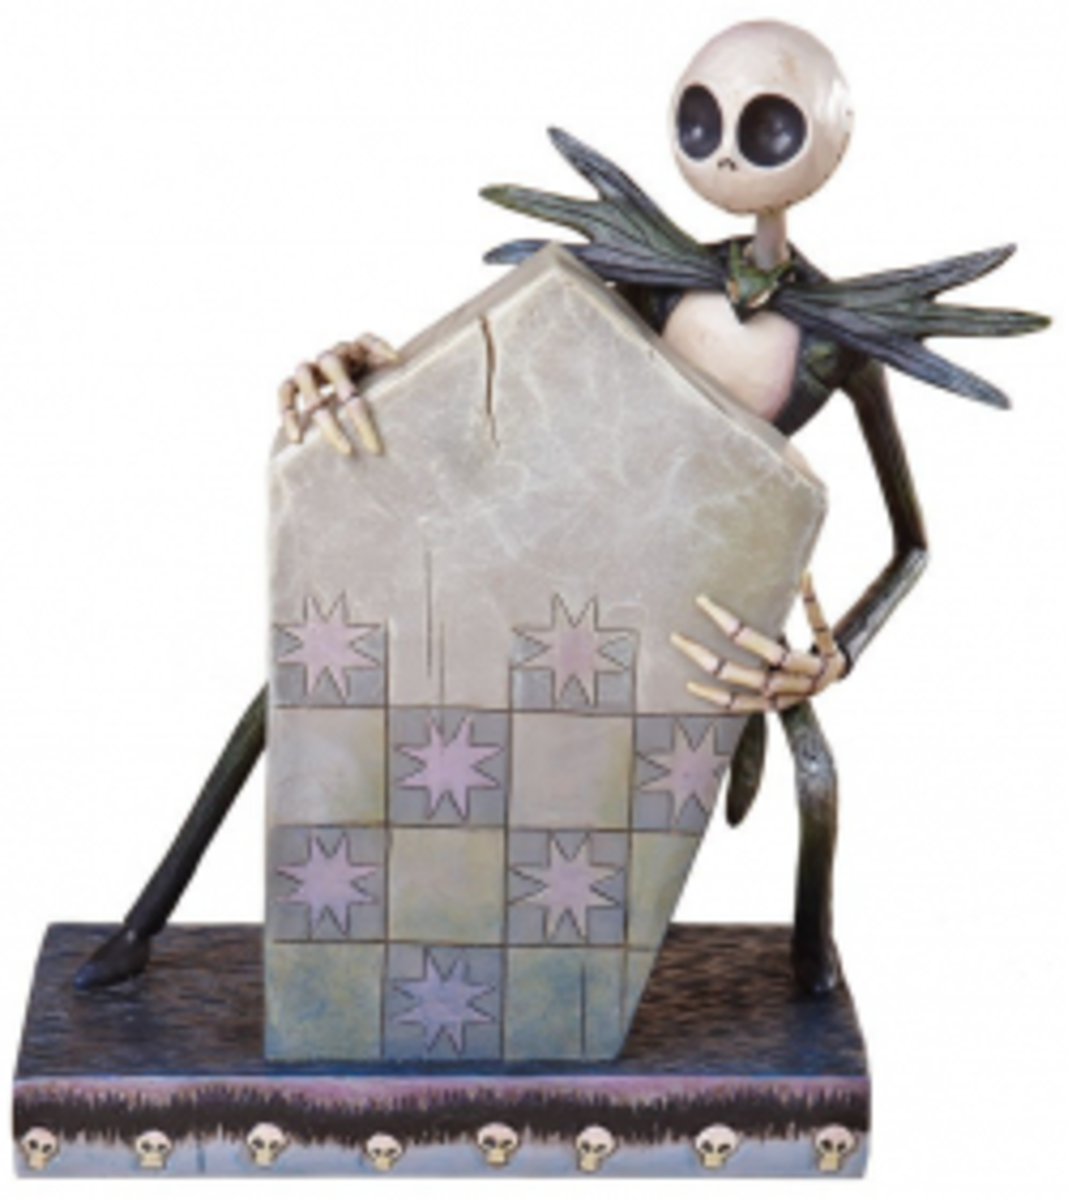 Disney Traditions by Jim Shore 4013977 The Nightmare Before Christmas Jack Skellington Figurine 7-1/2-Inch